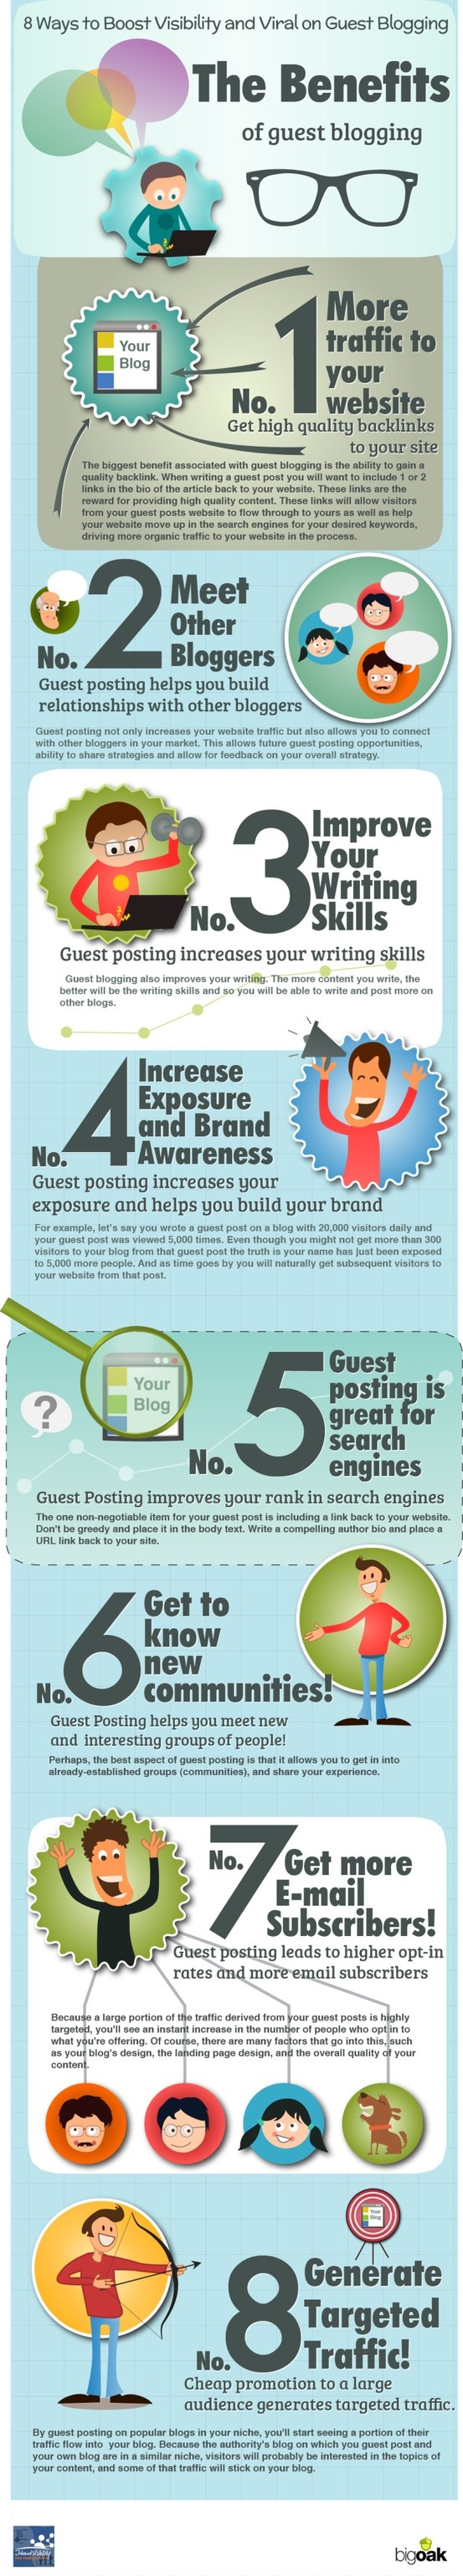 The Benefits of Guest Blogging Infographic